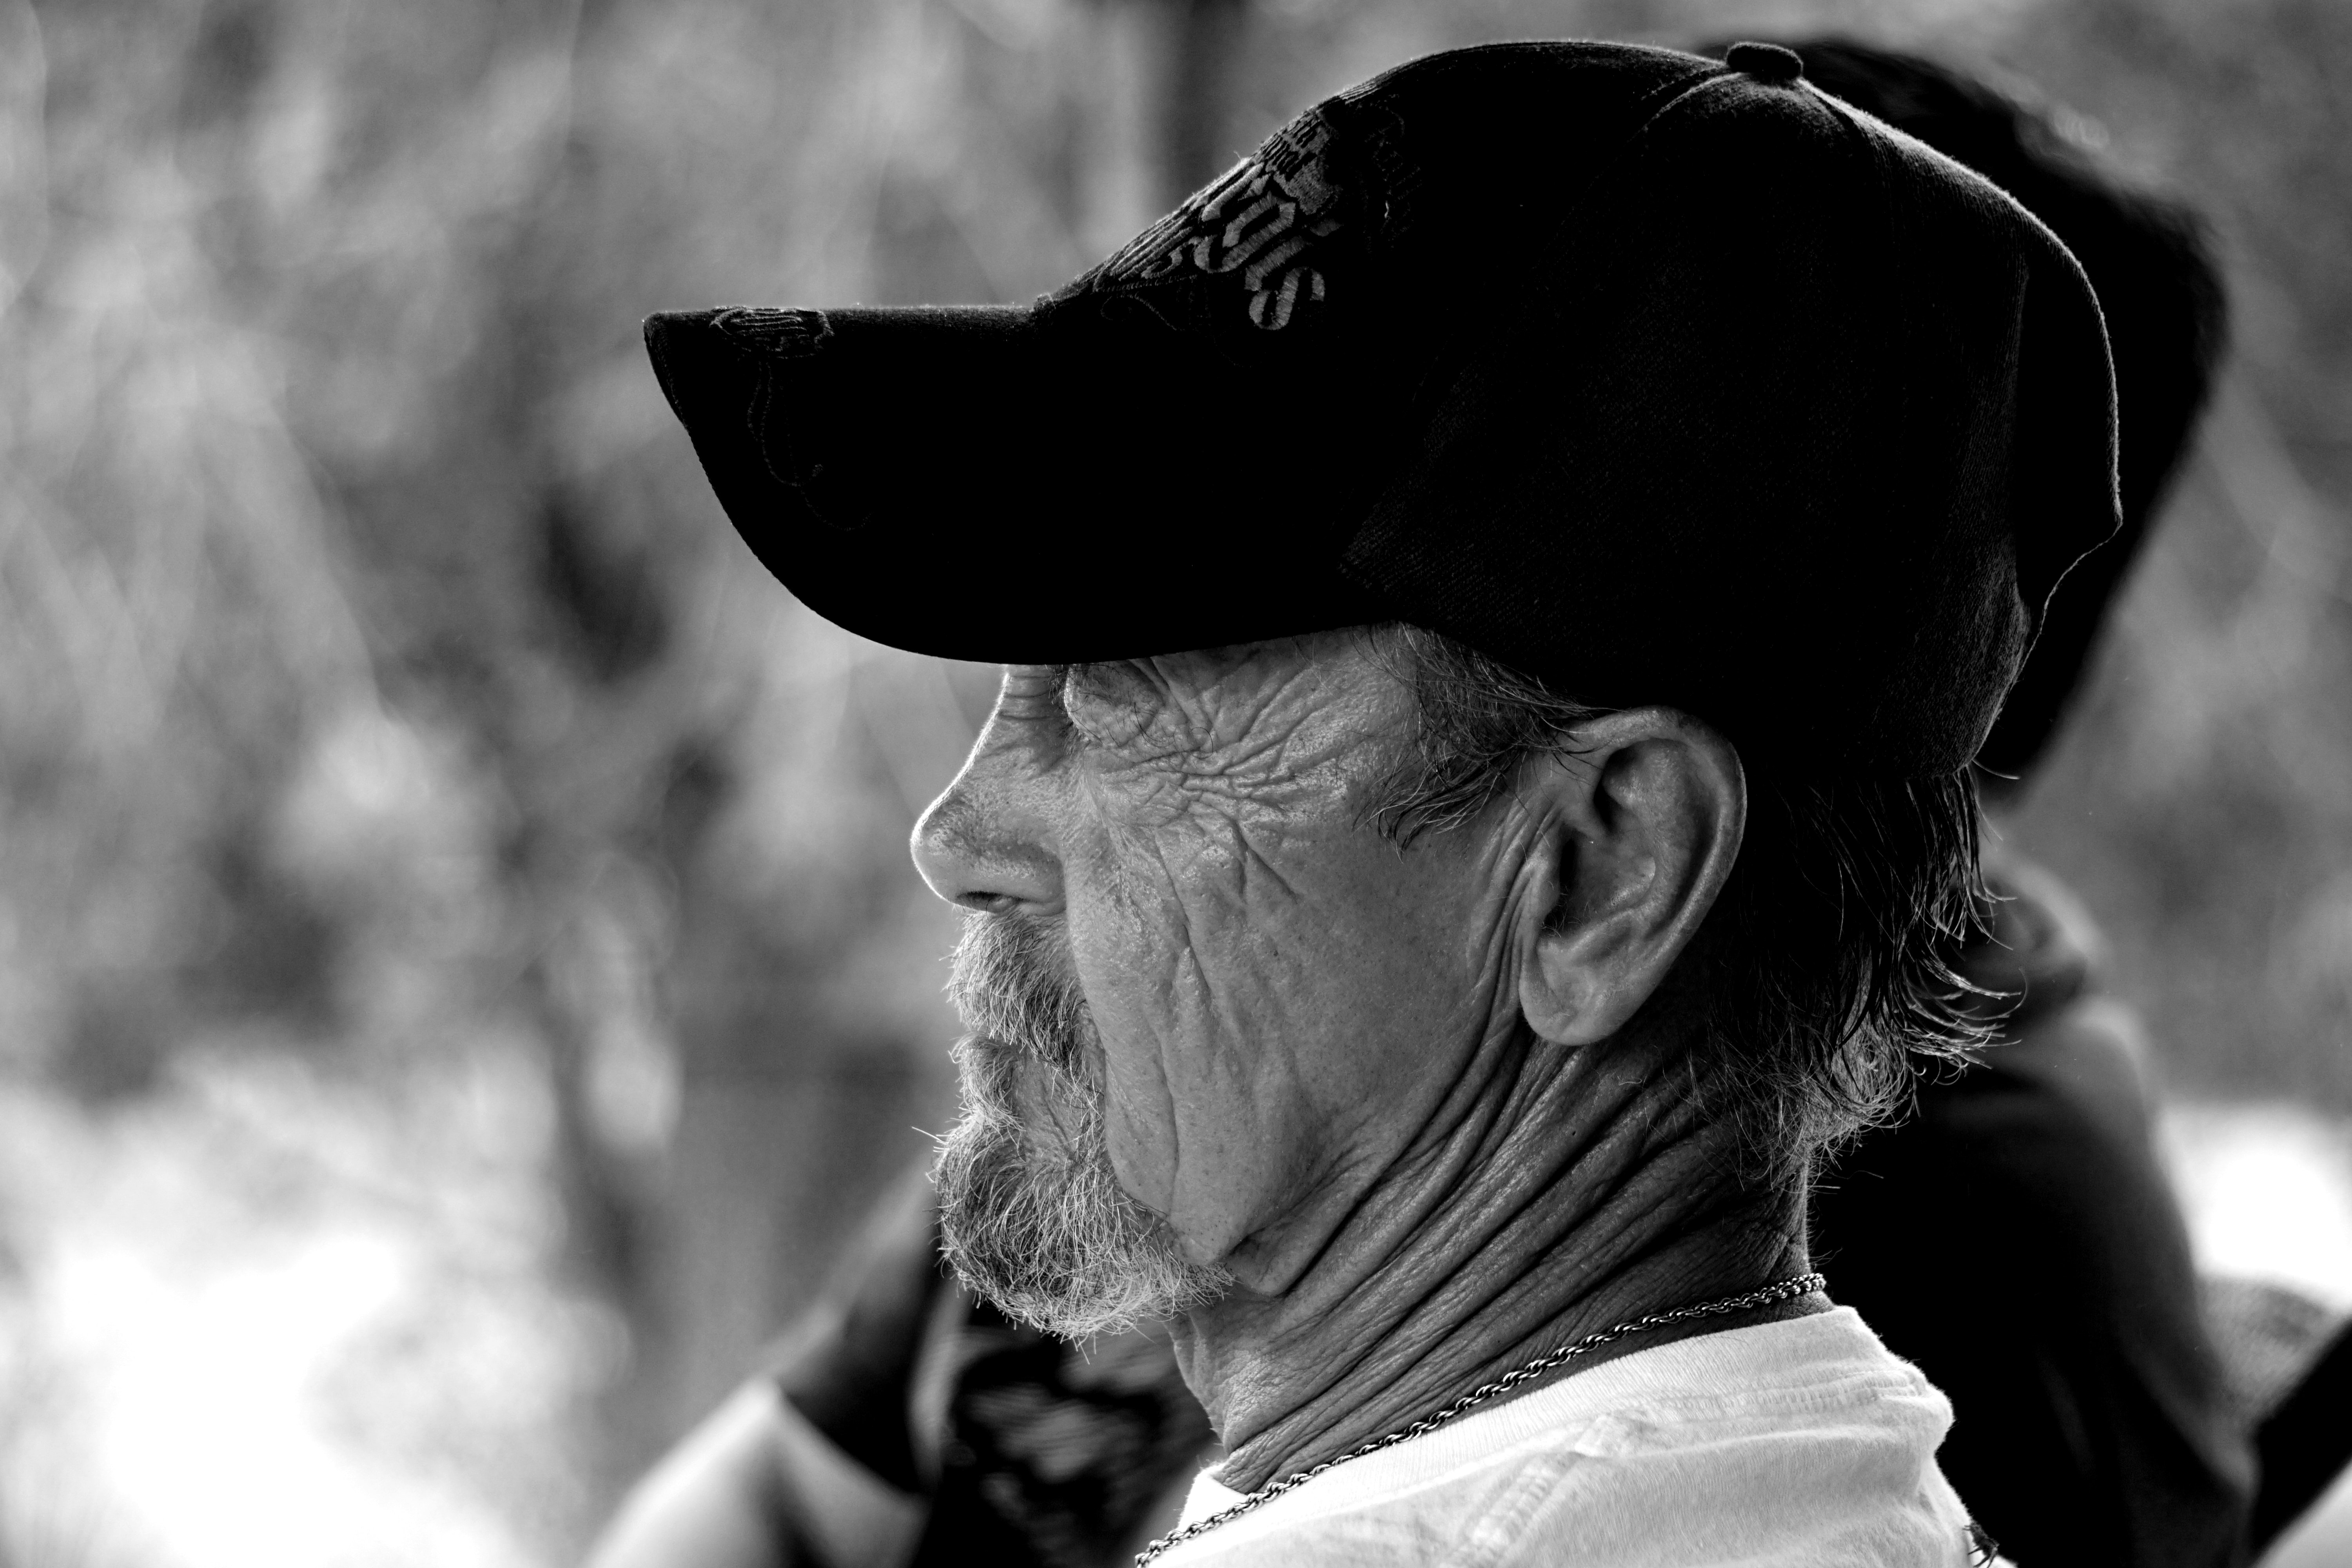 grayscale photography of man wearing black cap